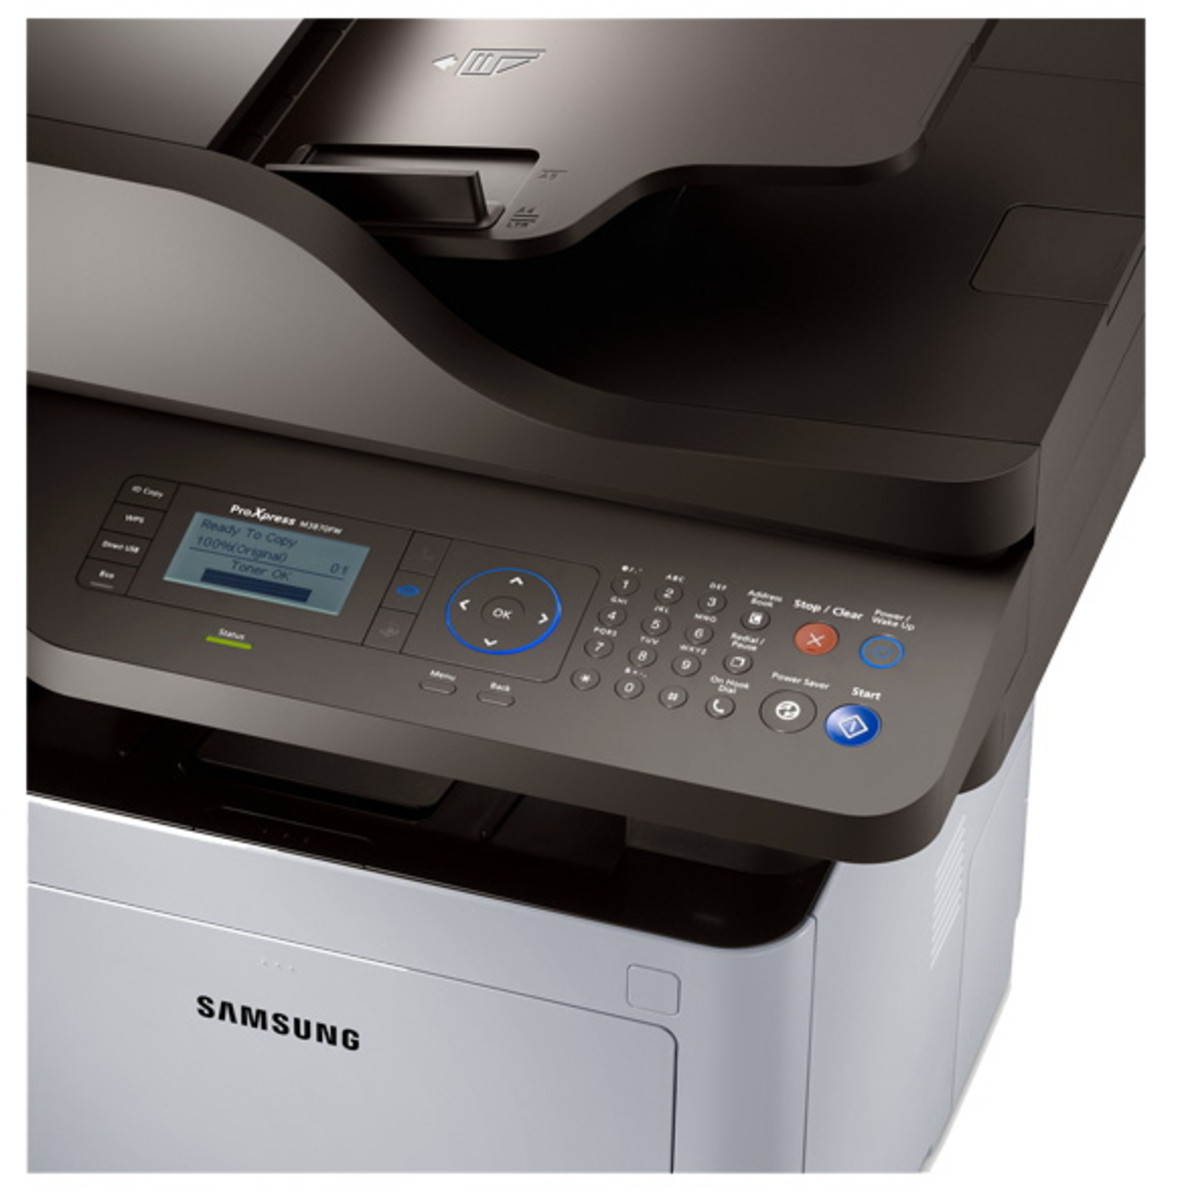 Samsung ProXpress SL-M3870FW Mono Laser Printer